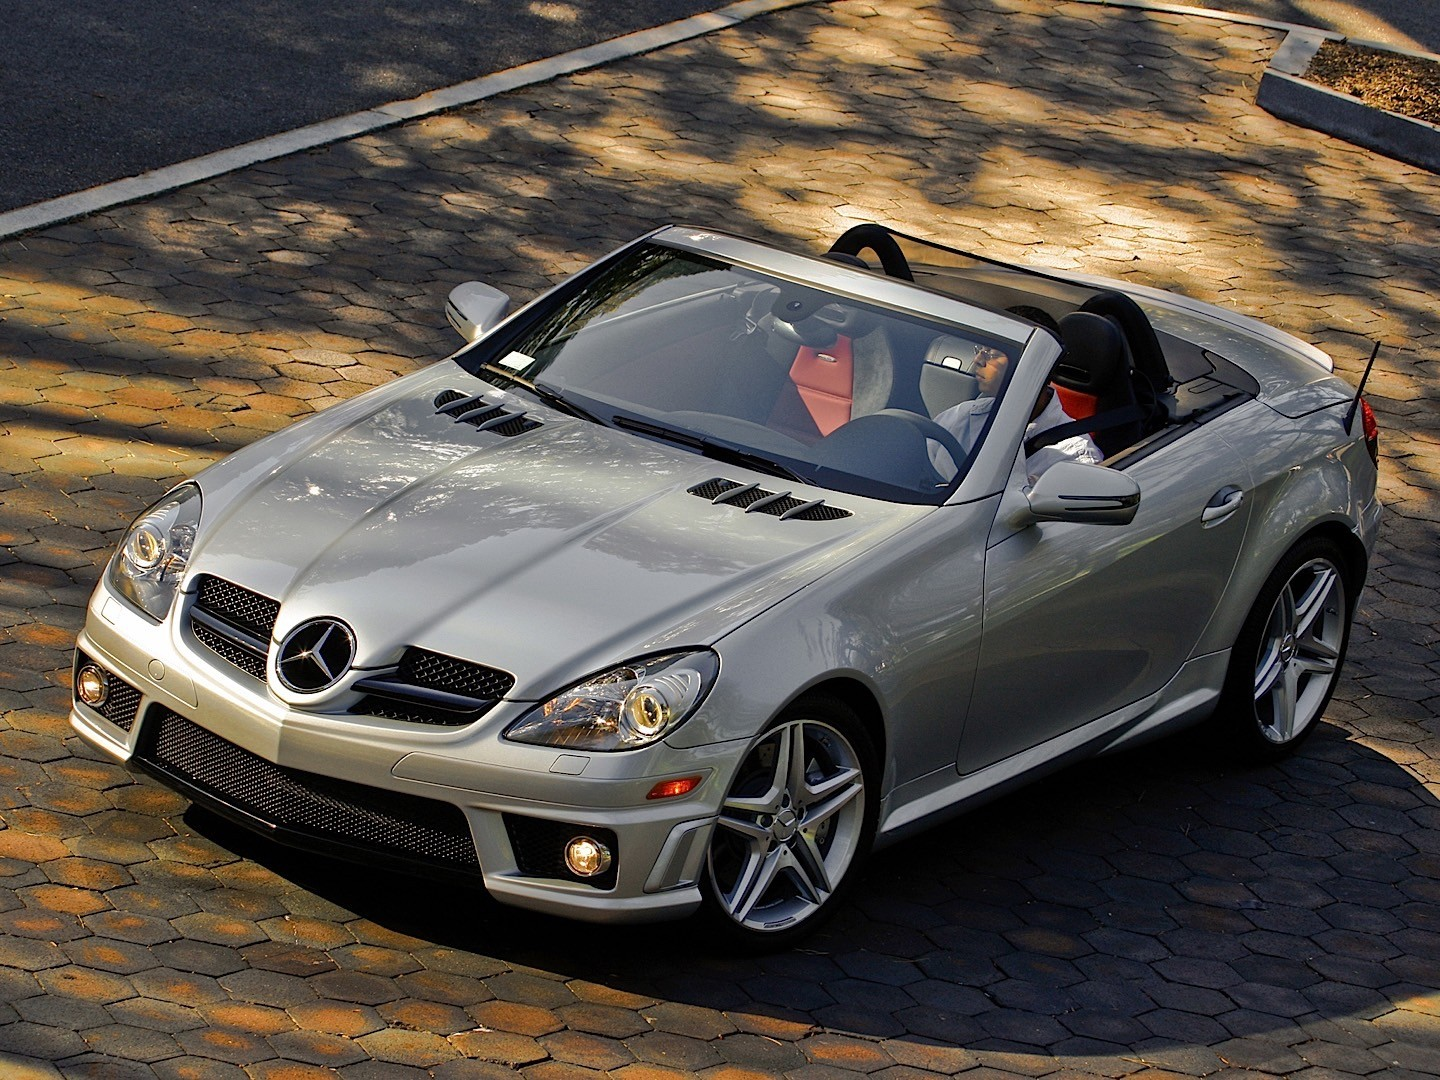 mercedes benz slk 55 amg r171 specs photos 2008 2009 2010 2011 autoevolution. Black Bedroom Furniture Sets. Home Design Ideas